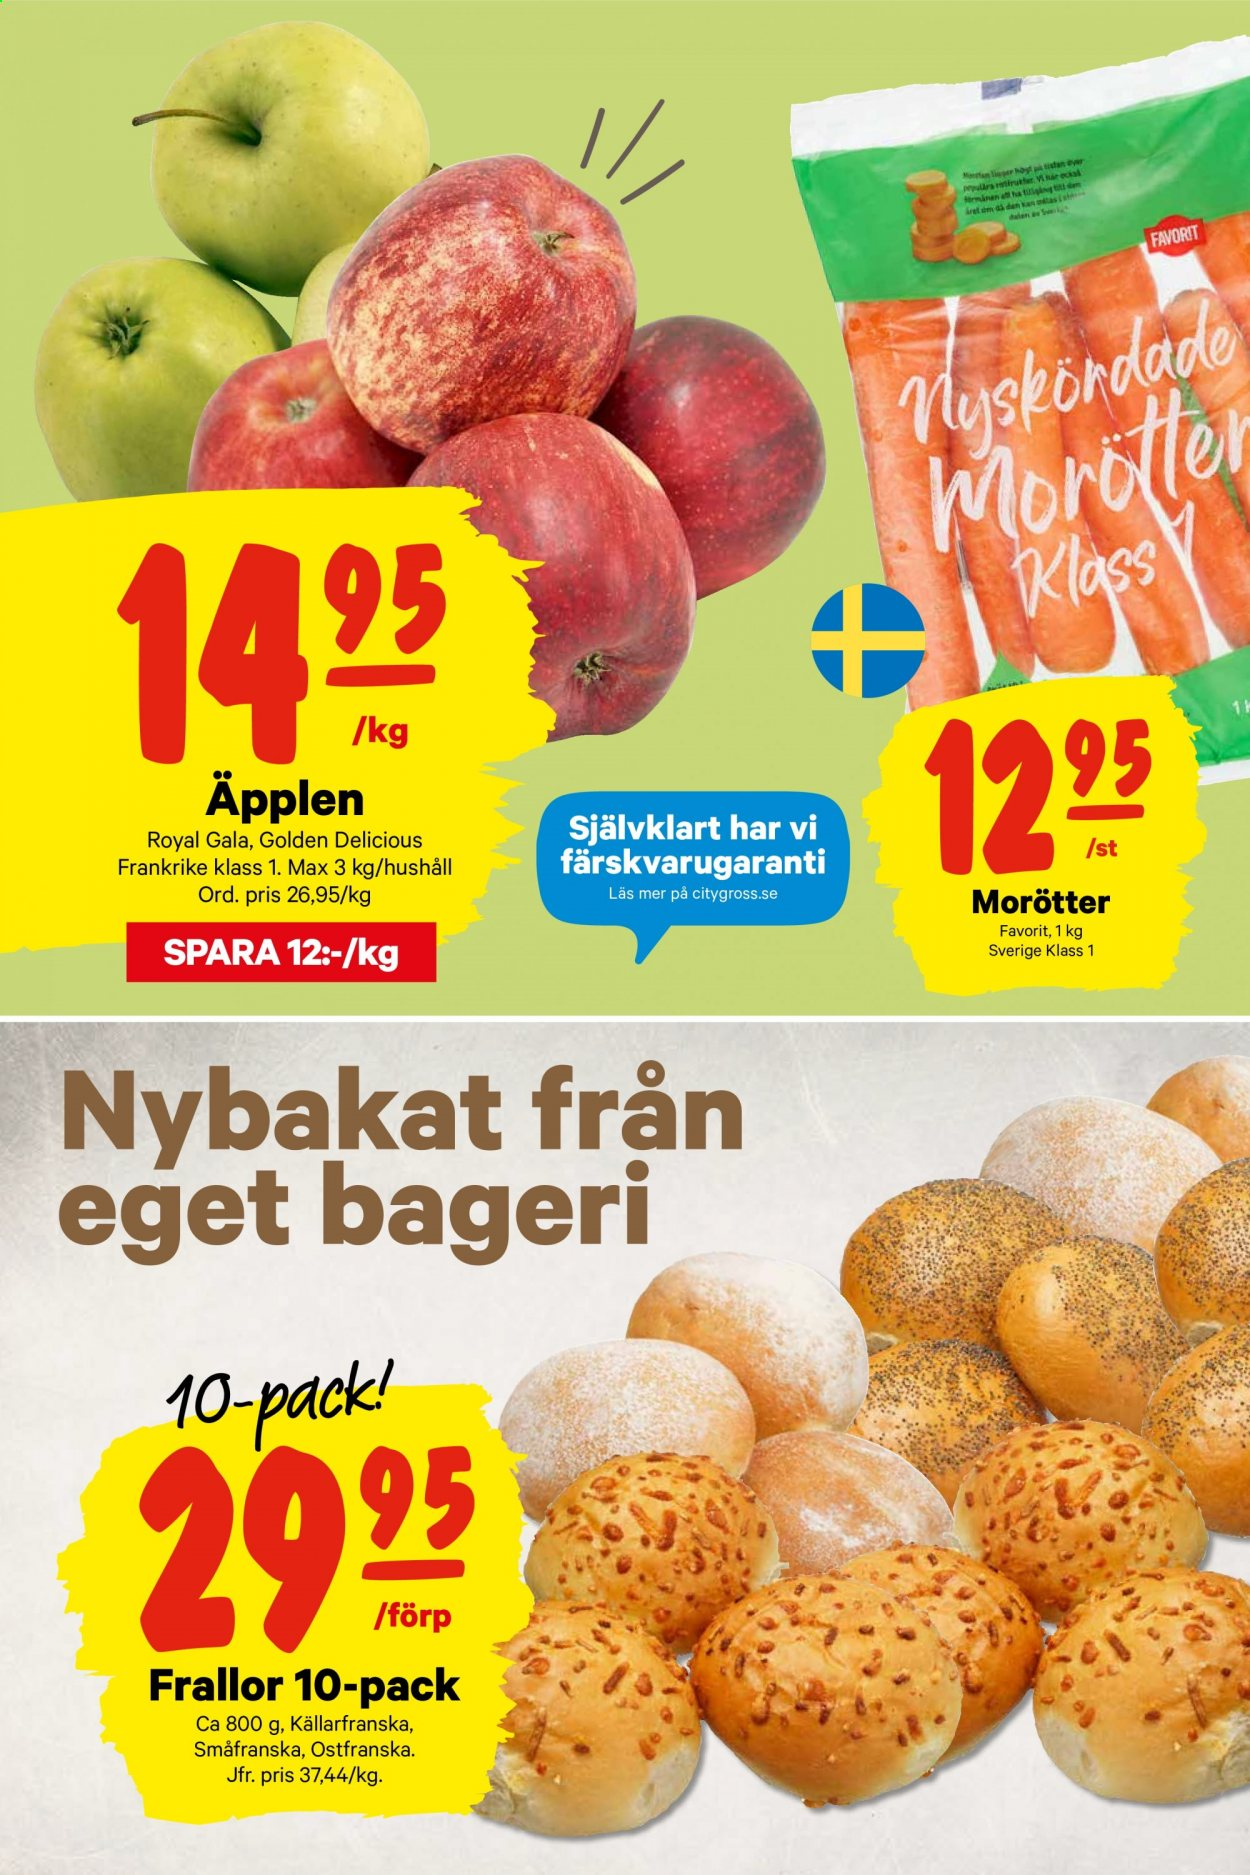 City Gross reklamblad - 22/3 2020 - 22/3 2020. Sida 3.